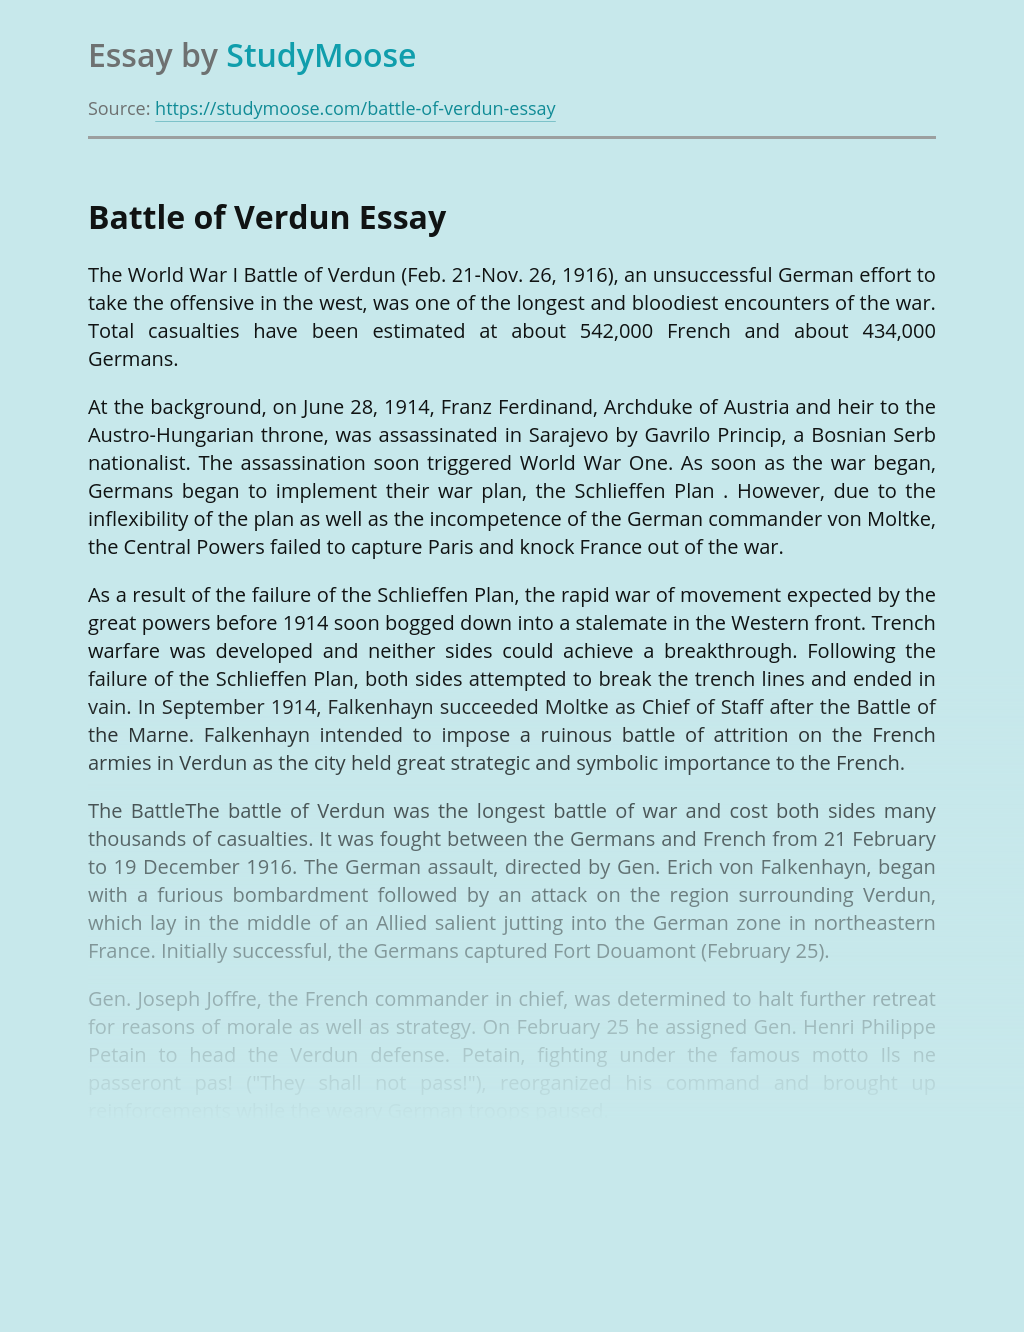 Battle of Verdun Analysis